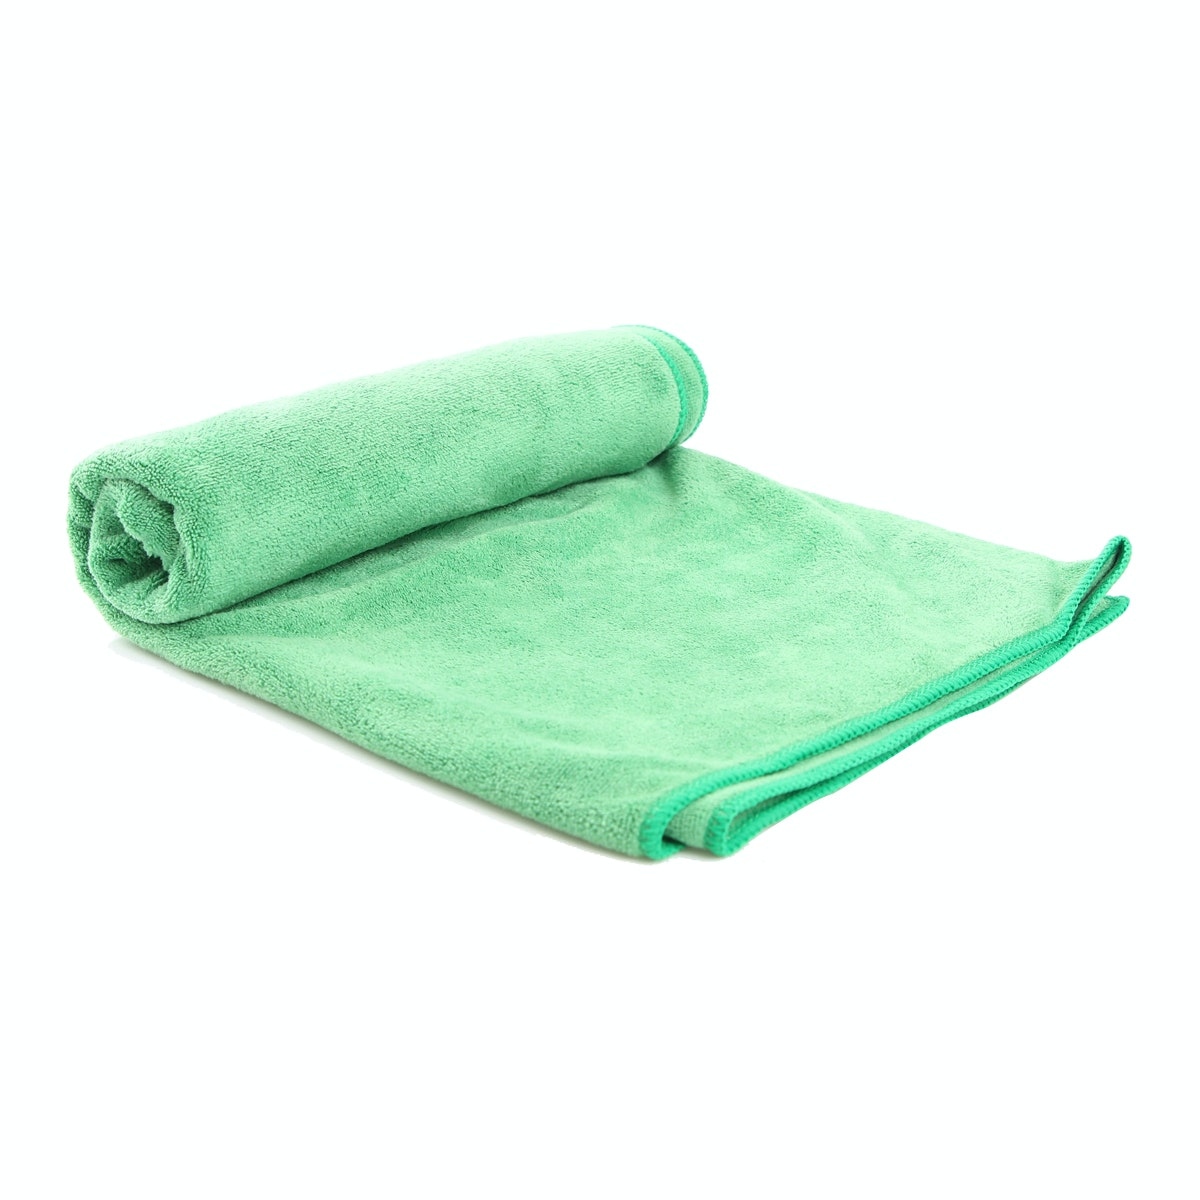 Quickdry Towel Green 70x140cm